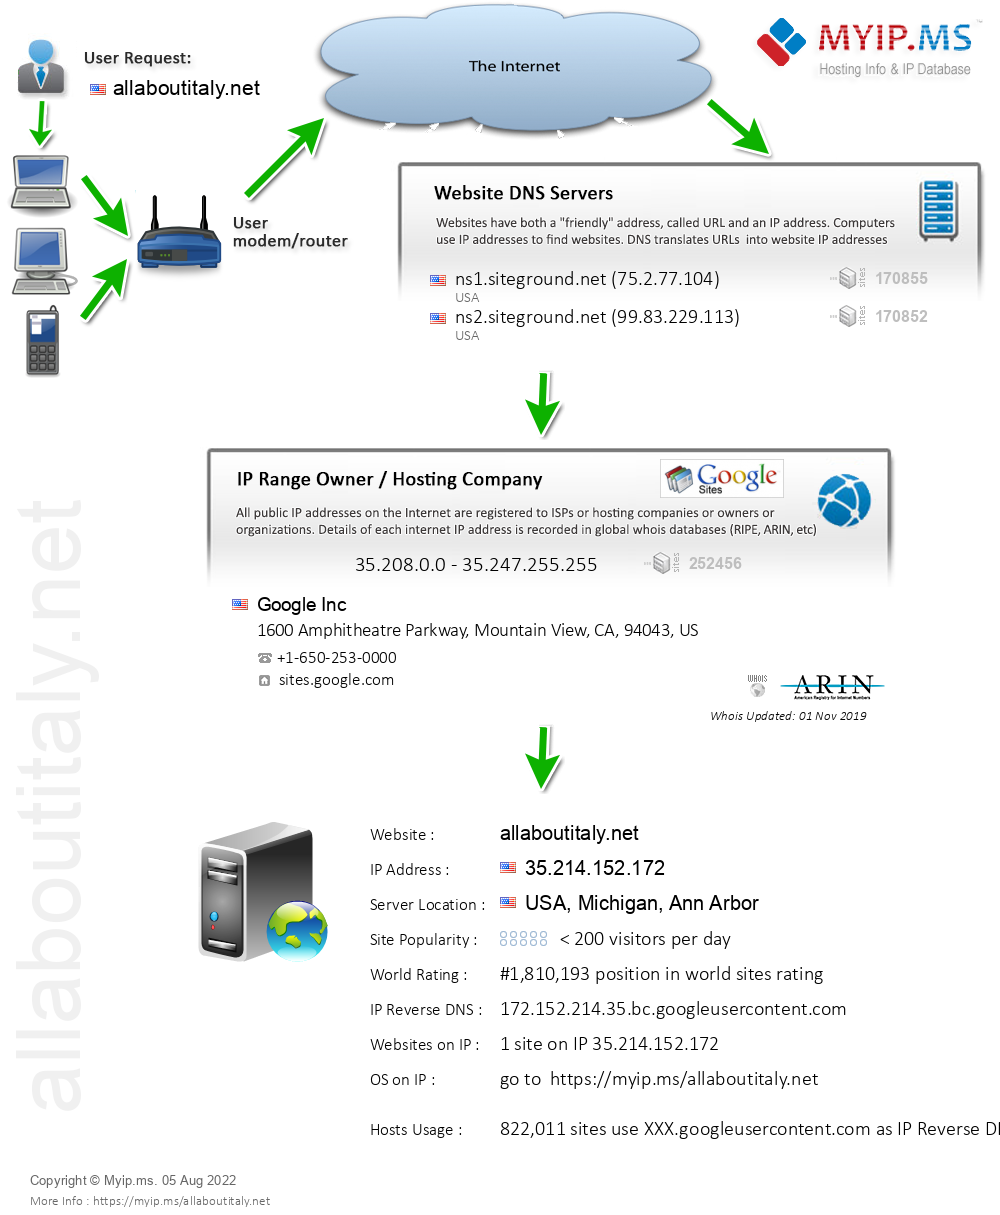 Allaboutitaly.net - Website Hosting Visual IP Diagram